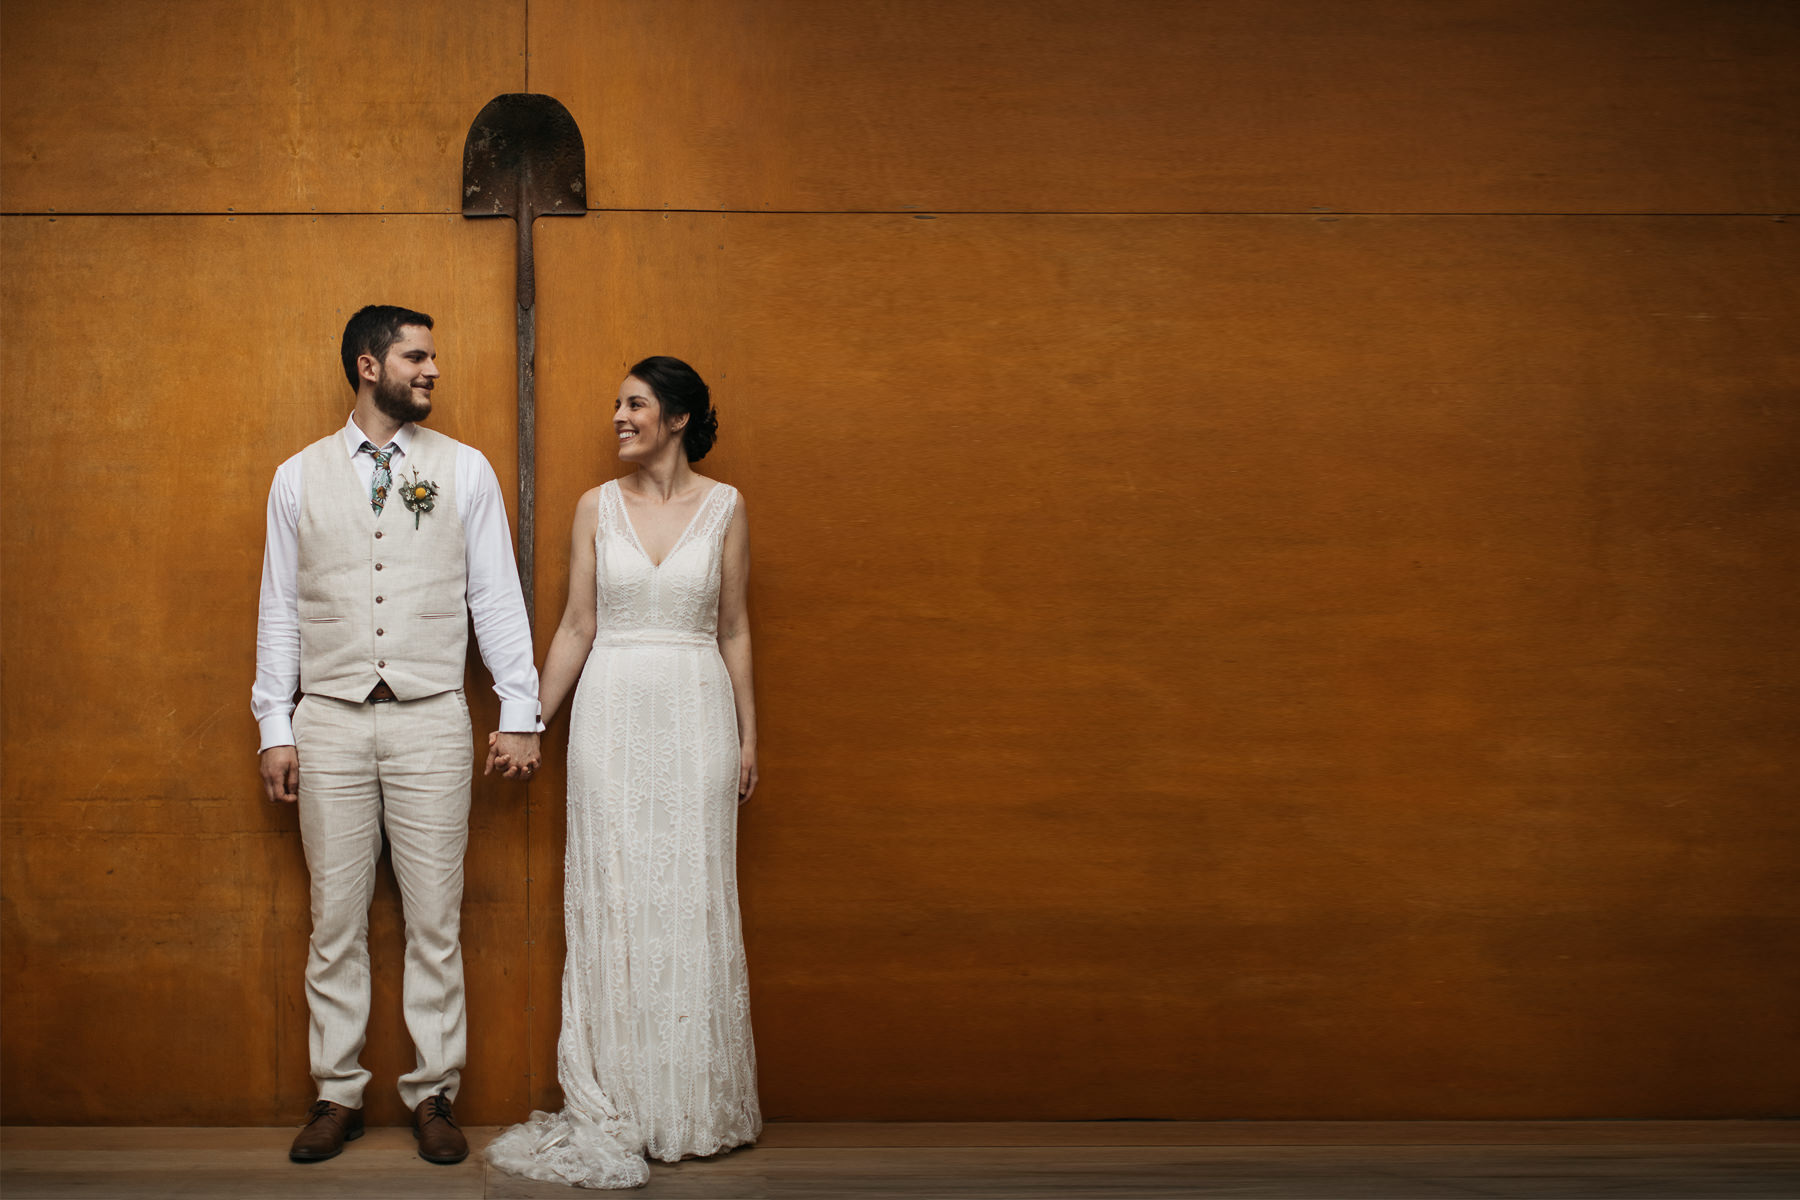 Bride and groom happily hold each others hands and smile against a stylish wooden wall - Paperbark Camp Wedding Photography